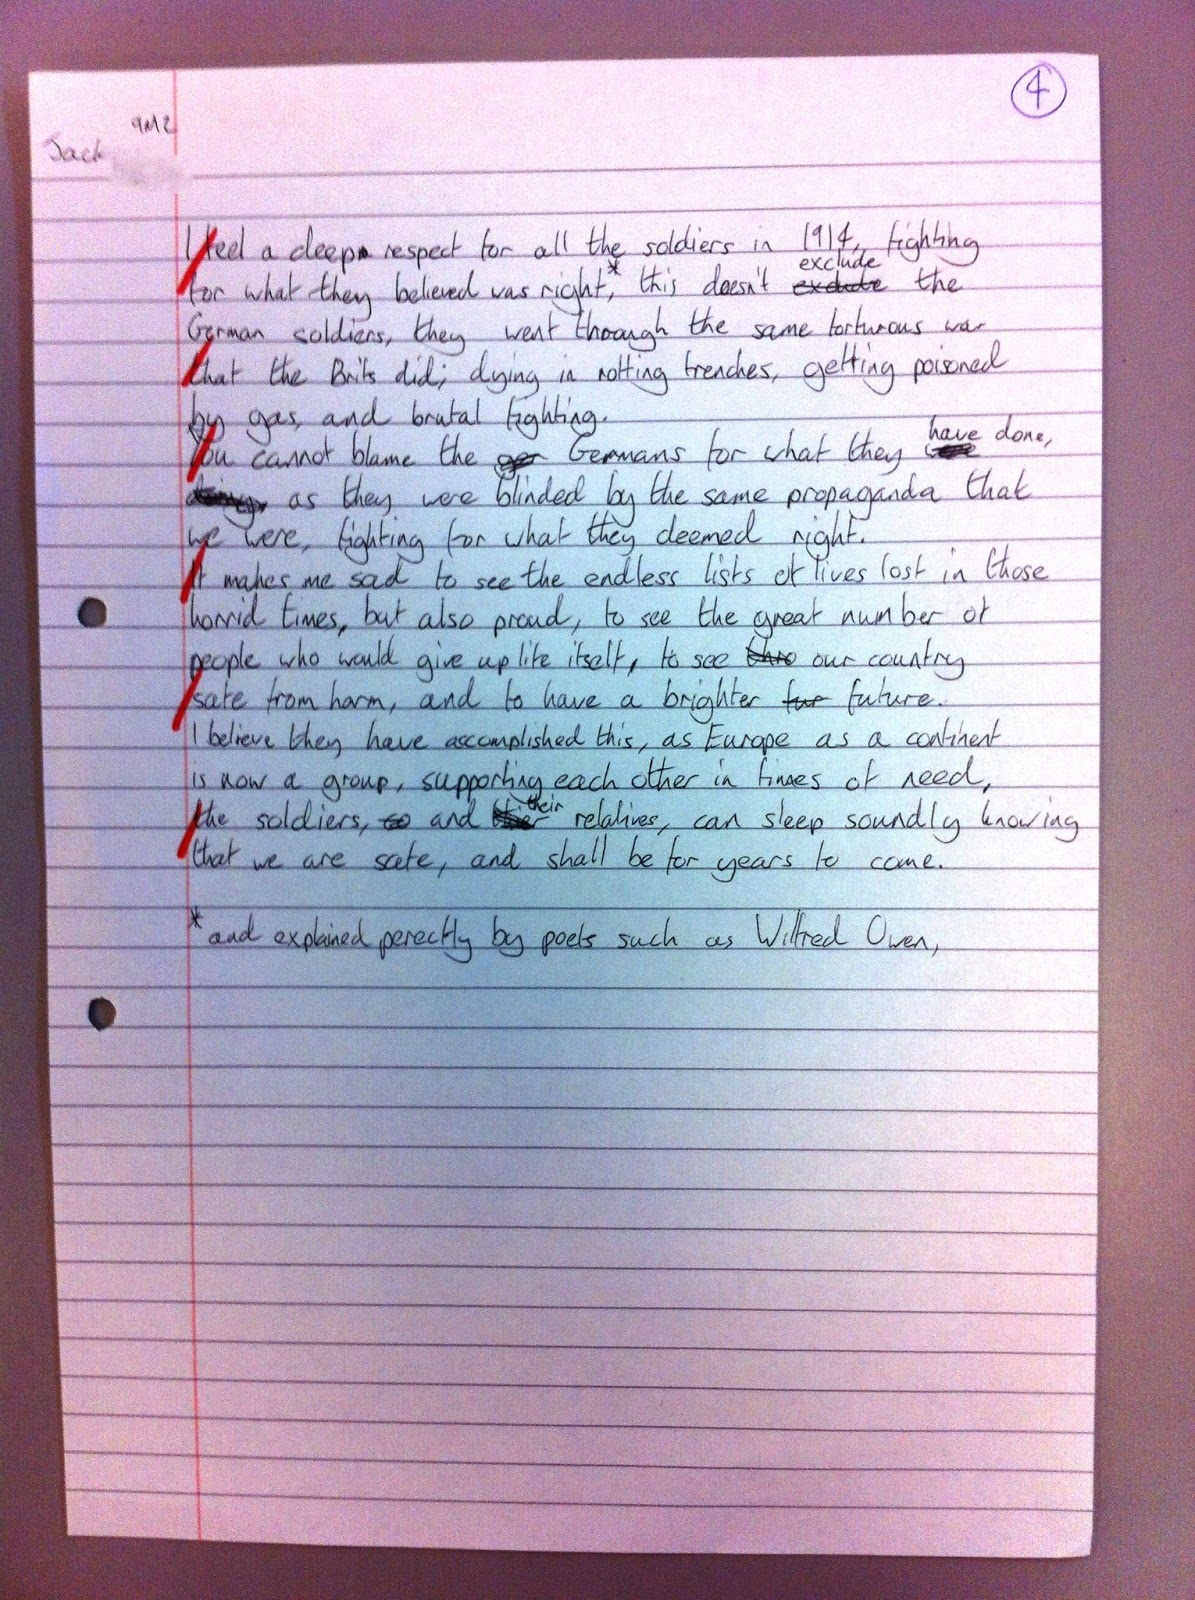 analytical essay war poetry Essays and criticism on wilfred owen - critical essays wilfred owen poetry: british analysis of soldiers during world war i in perhaps his best known poem.